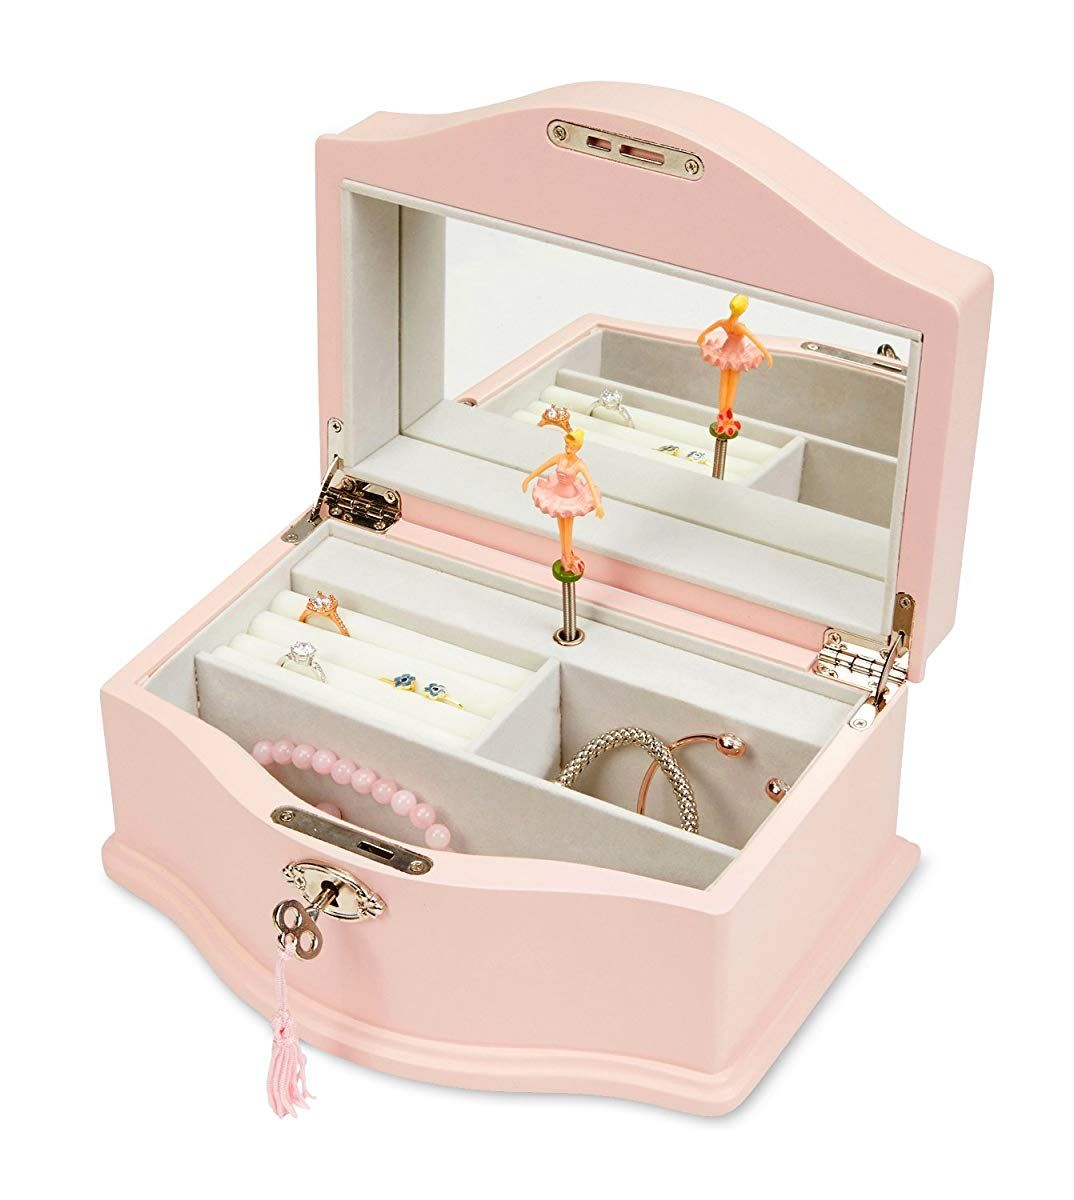 Jewelkeeper girls wooden musical jewelry box with lock and